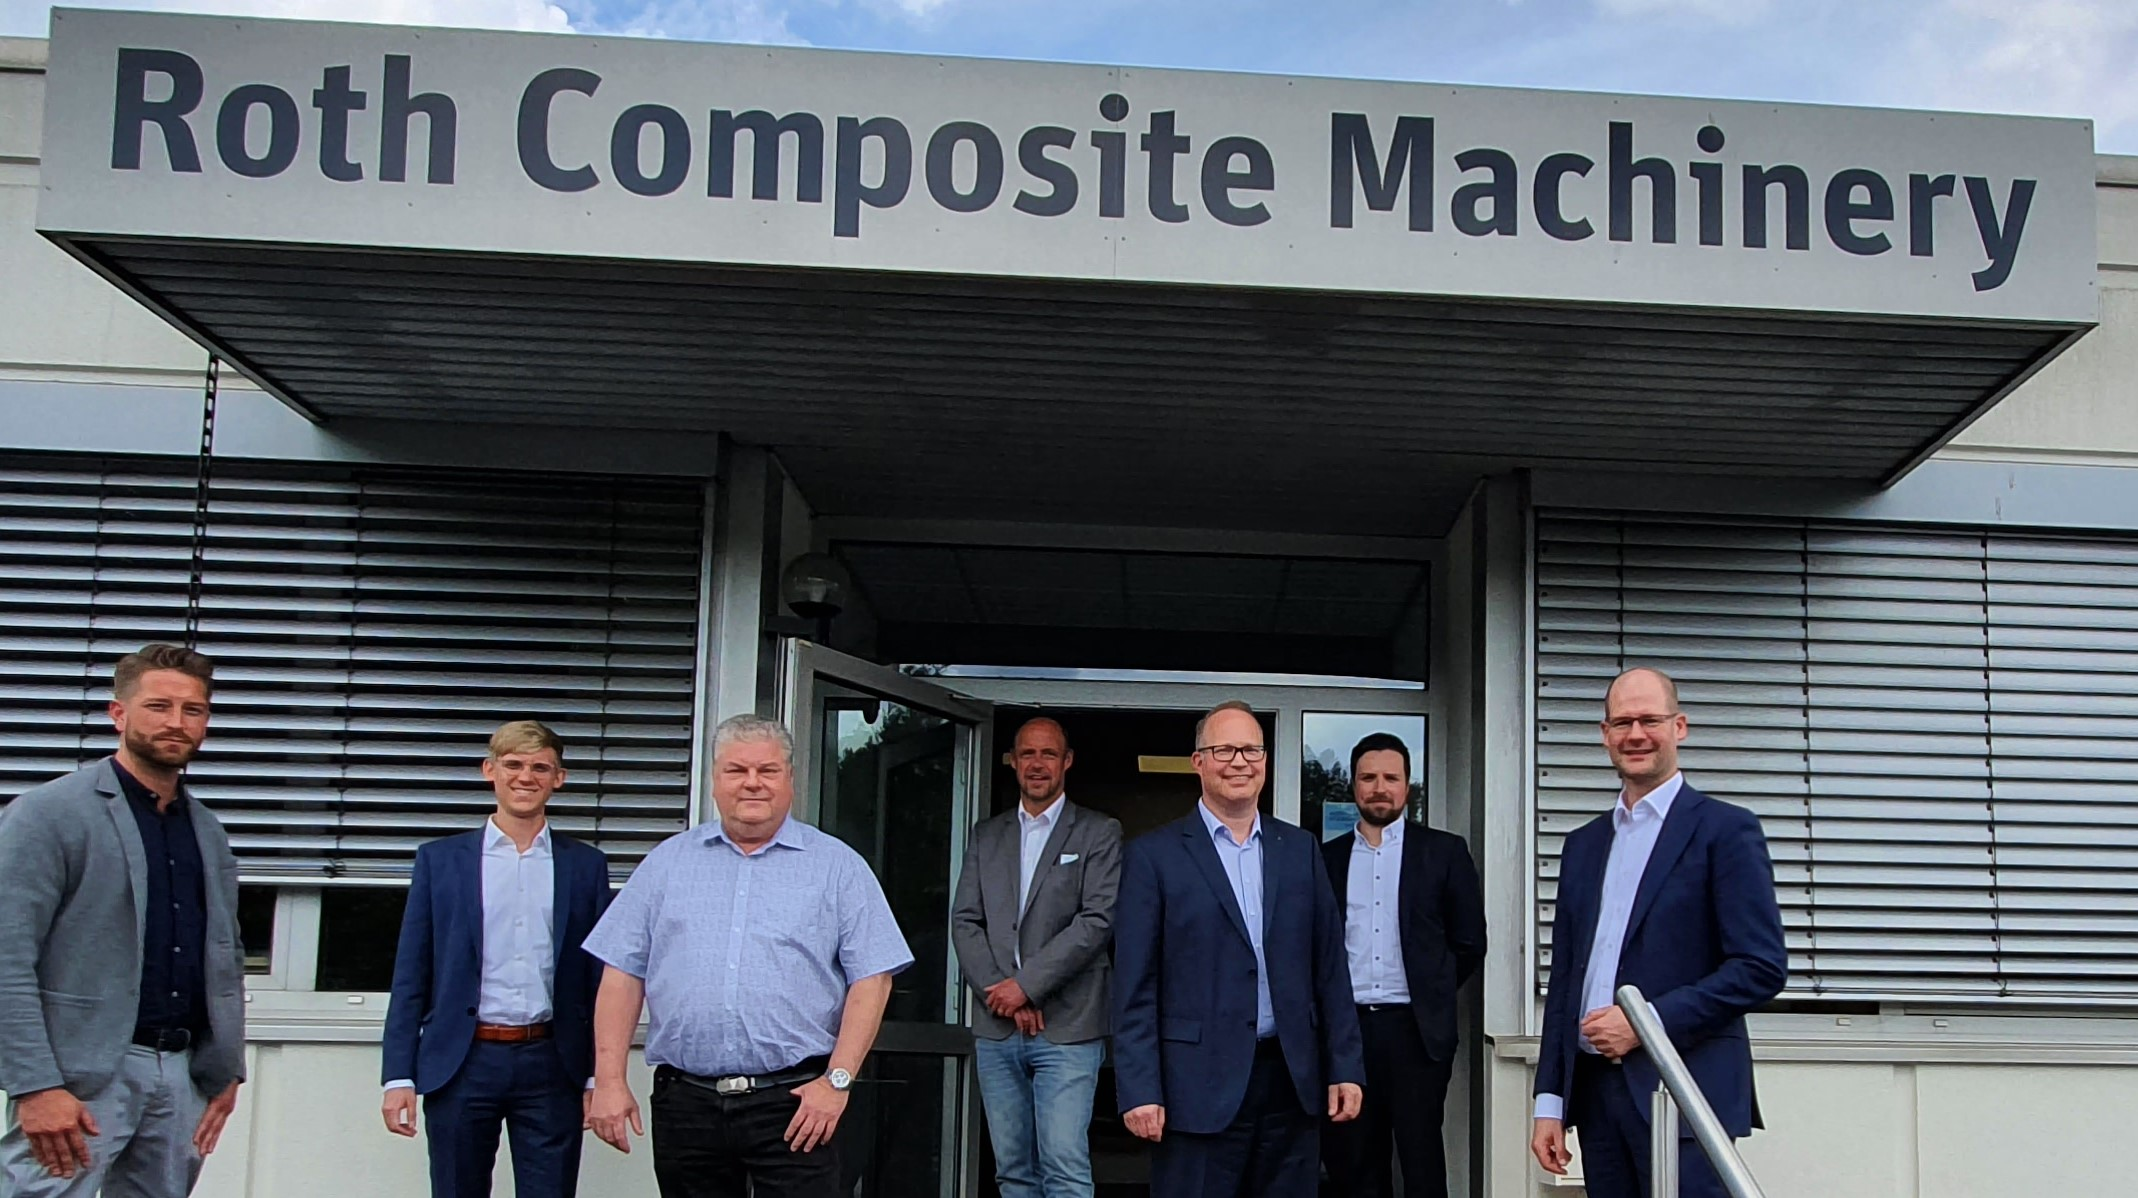 AZL Partner Roth Composite Machinery GmbH